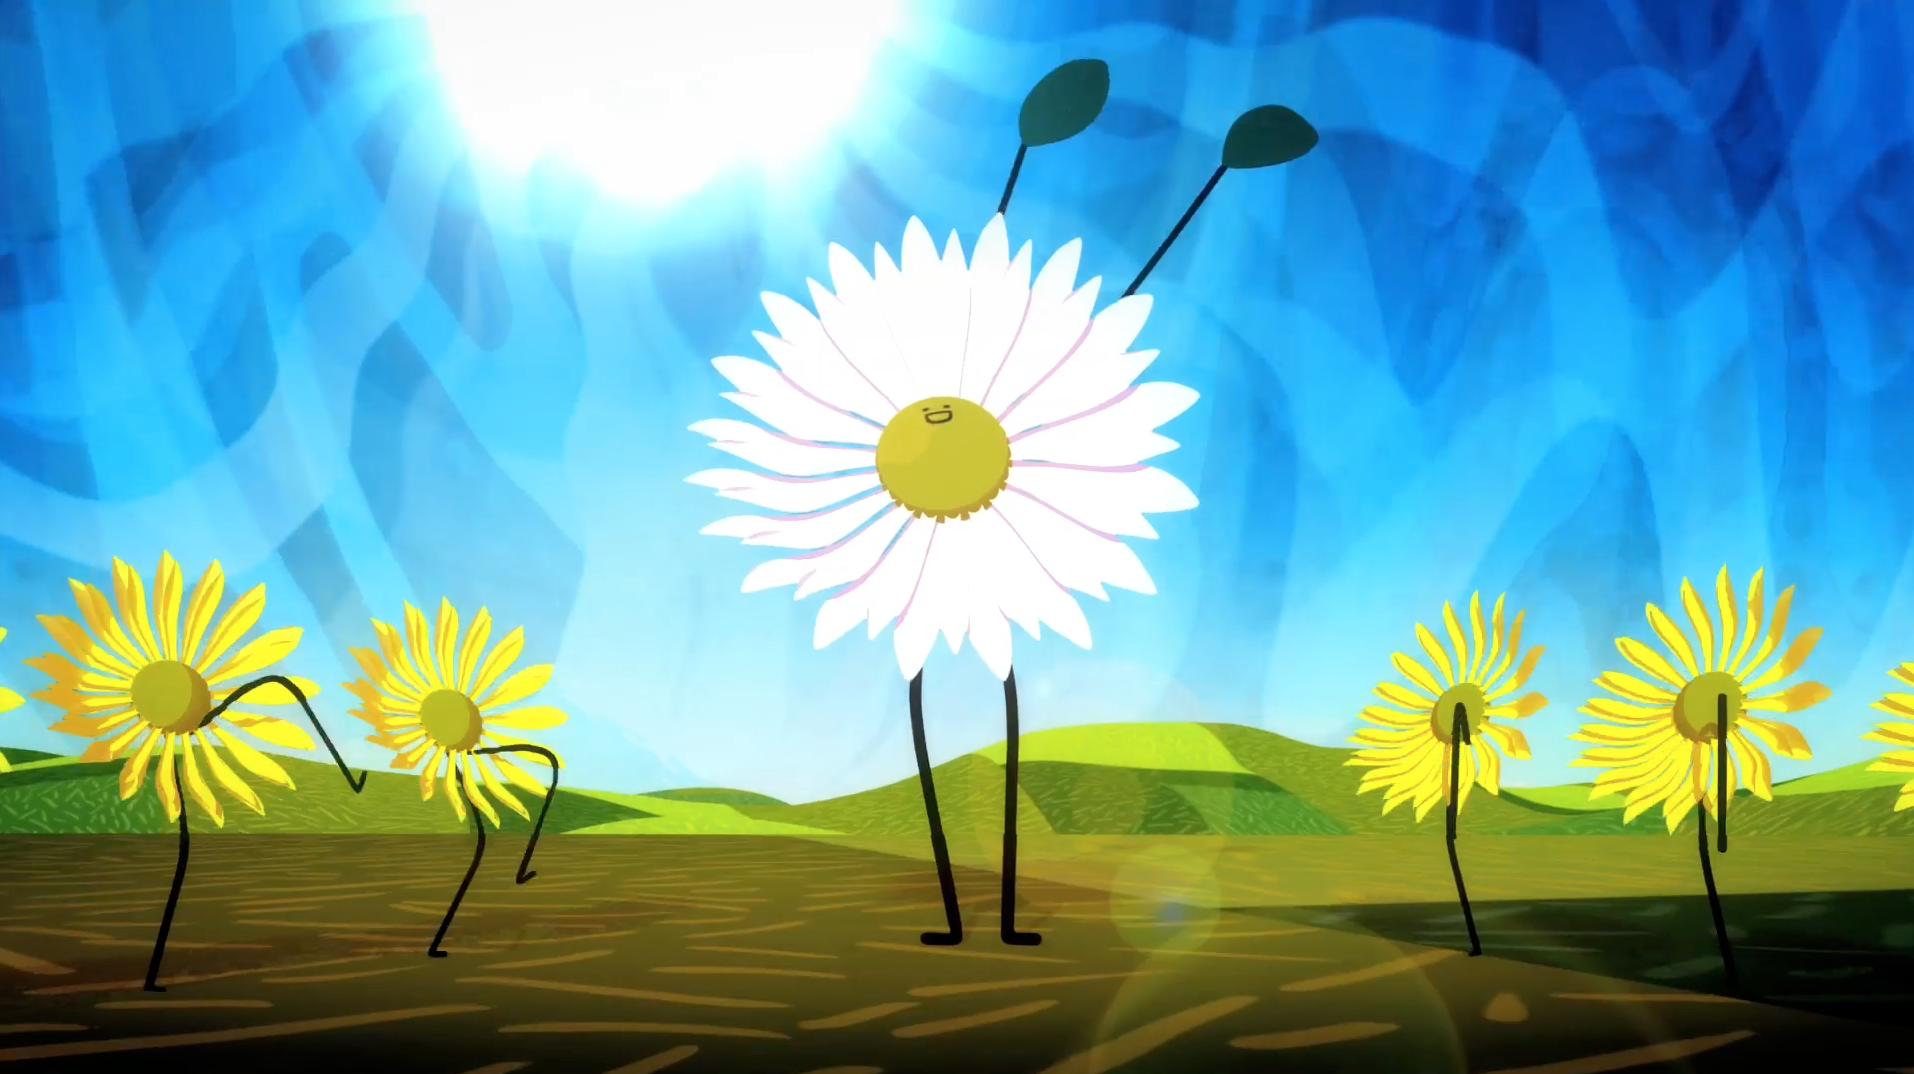 Animation by Dan Wilson with elements by Robert Calcagno